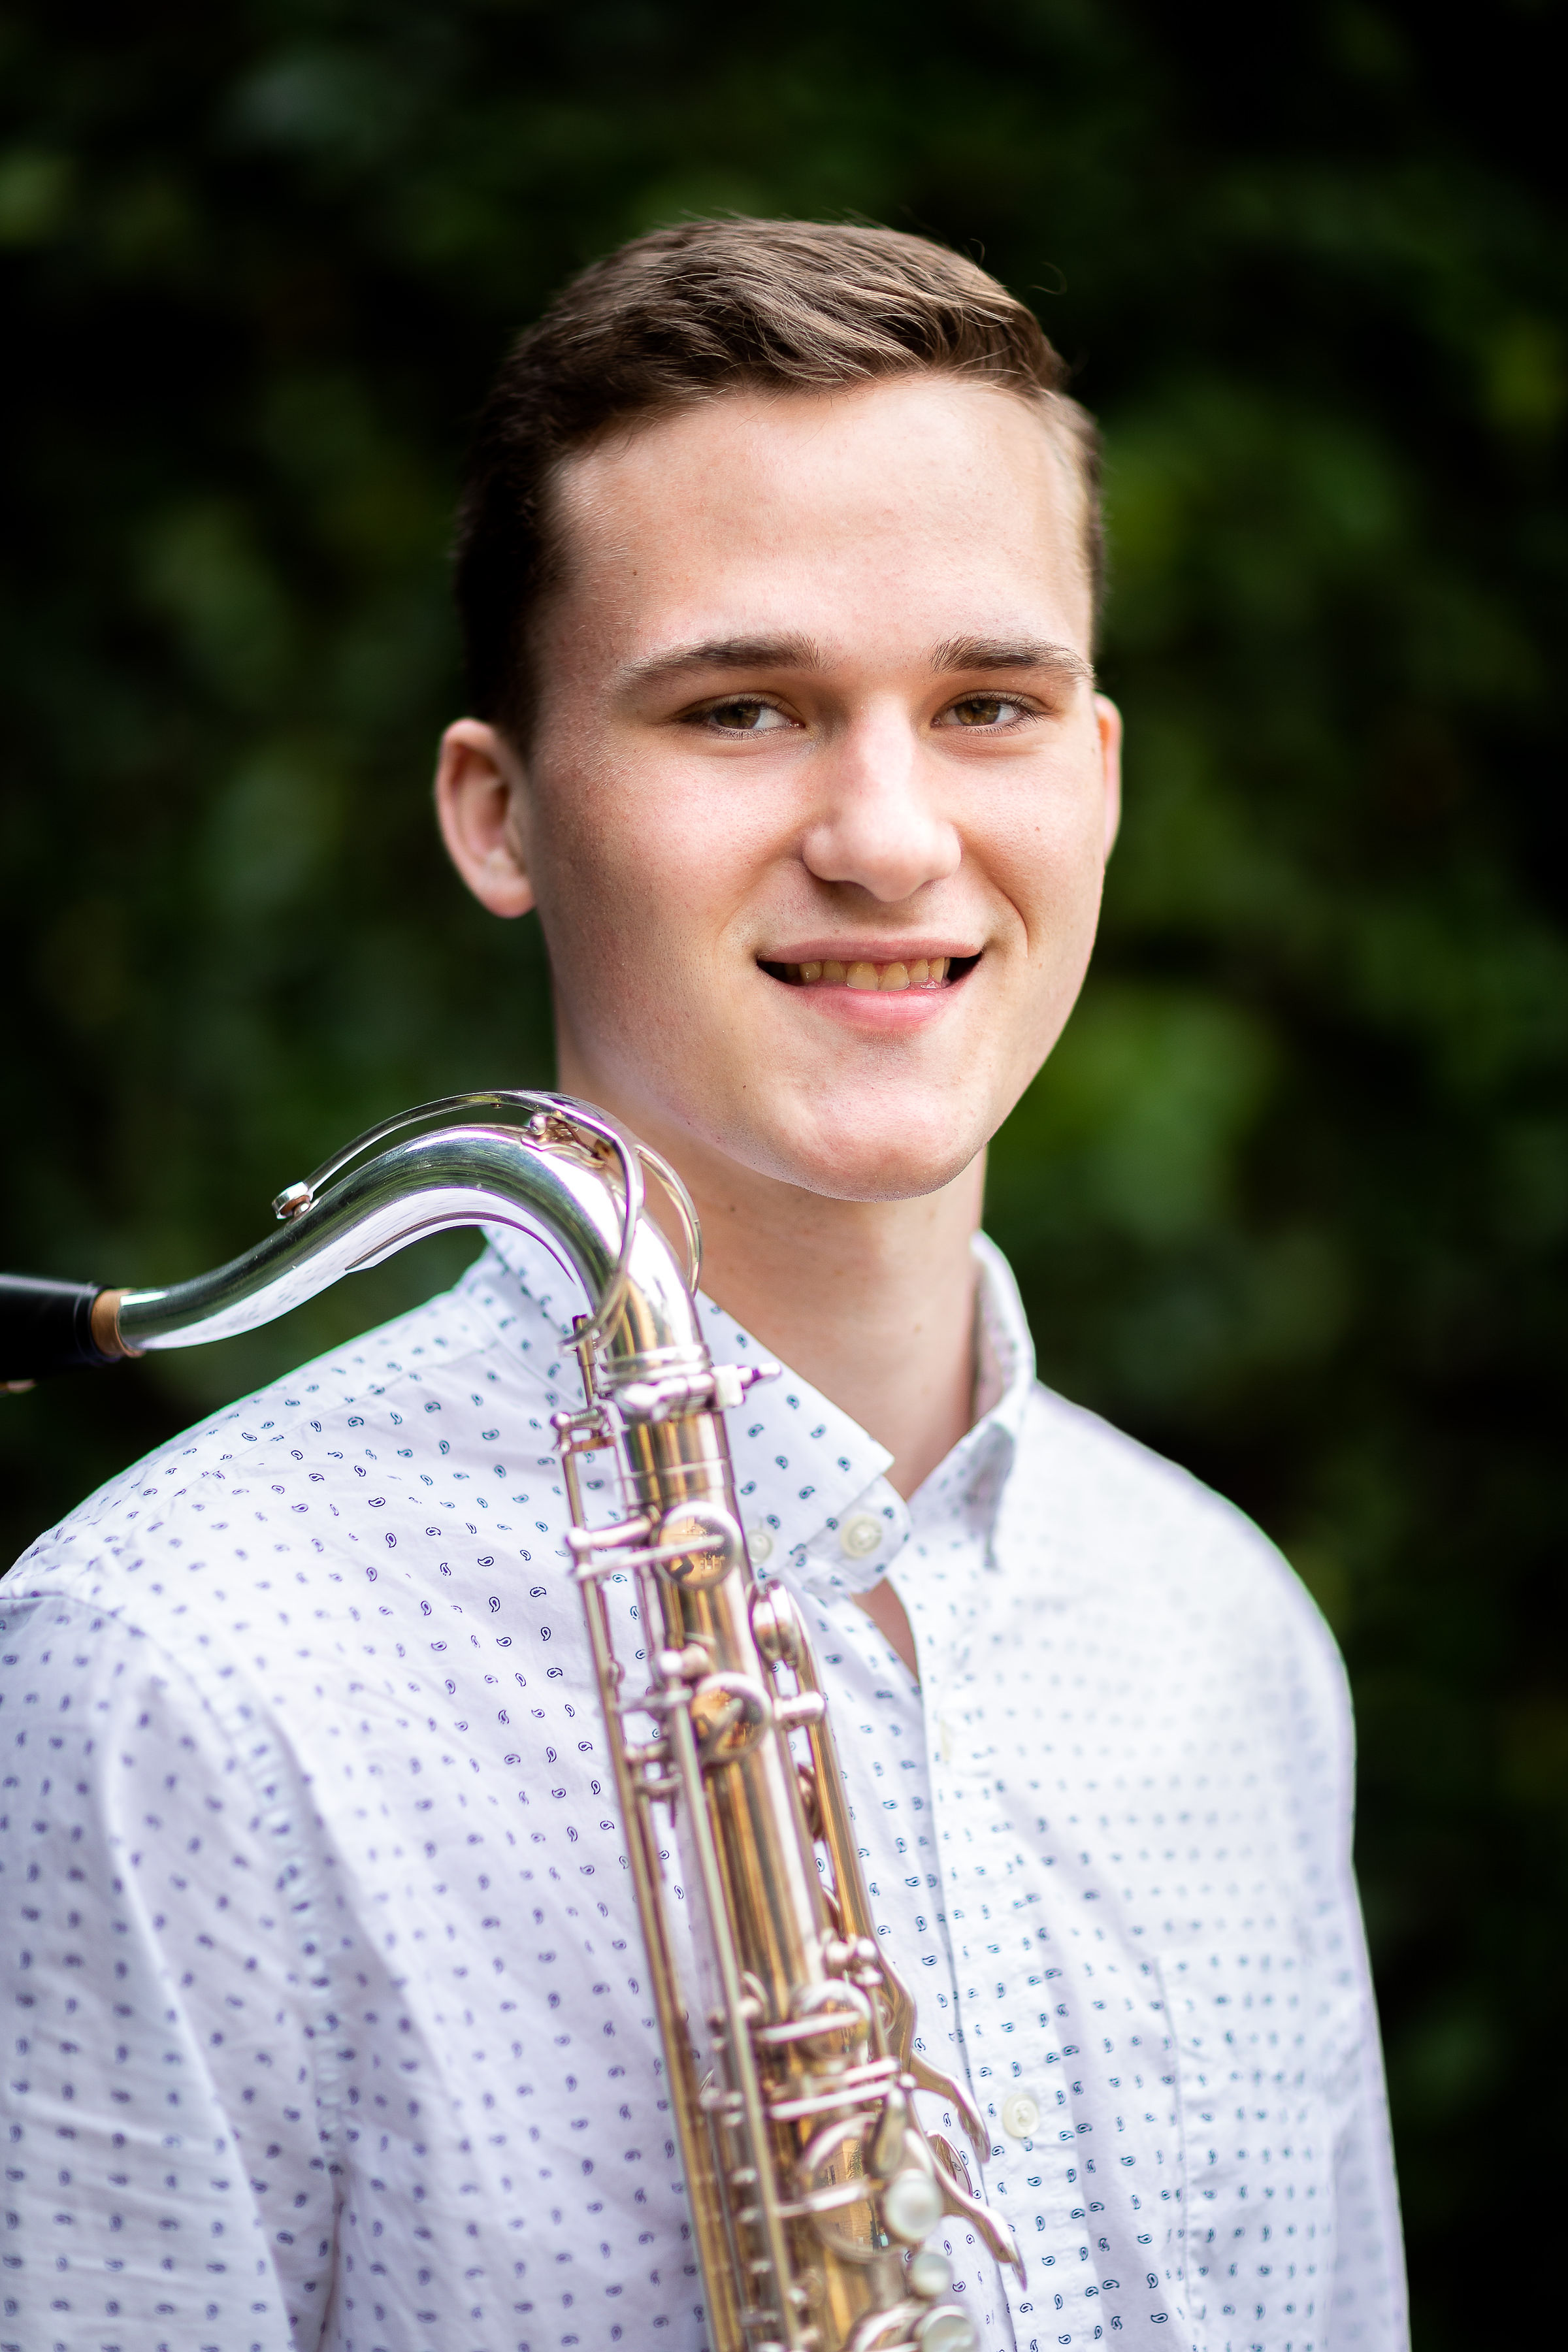 CLANCY ELLIS, TENOR - Clancy Ellis, from Merritt Island, Florida, is pursuing a Bachelor's of Music Performance at Eastman under the direction of Chien-Kwan Lin. Clancy also had the opportunity to study extensively with SSG Doug O'Connor of the U.S. Army Band and Vincent David of the Versailles Conservatory. At Eastman, he is a member of the Eastman Saxophone Project (ESP) and the Eastman Wind Ensemble. As a soloist, Clancy recently debuted with the Cordancia Chamber Orchestra as the first-place winner of the Nico Toscano Concerto Competition. He was also a prizewinner in the 198th Army Band Solo competition. Clancy has attended saxophone institutes throughout America and Europe, where he studied with renowned teachers such as Claude Delangle, Frederick L. Hemke, Arno Bornkamp, and Timothy McAllister. In addition to playing saxophone, Clancy has studied orchestral conducting with Brad Lubman and Mark Powell.